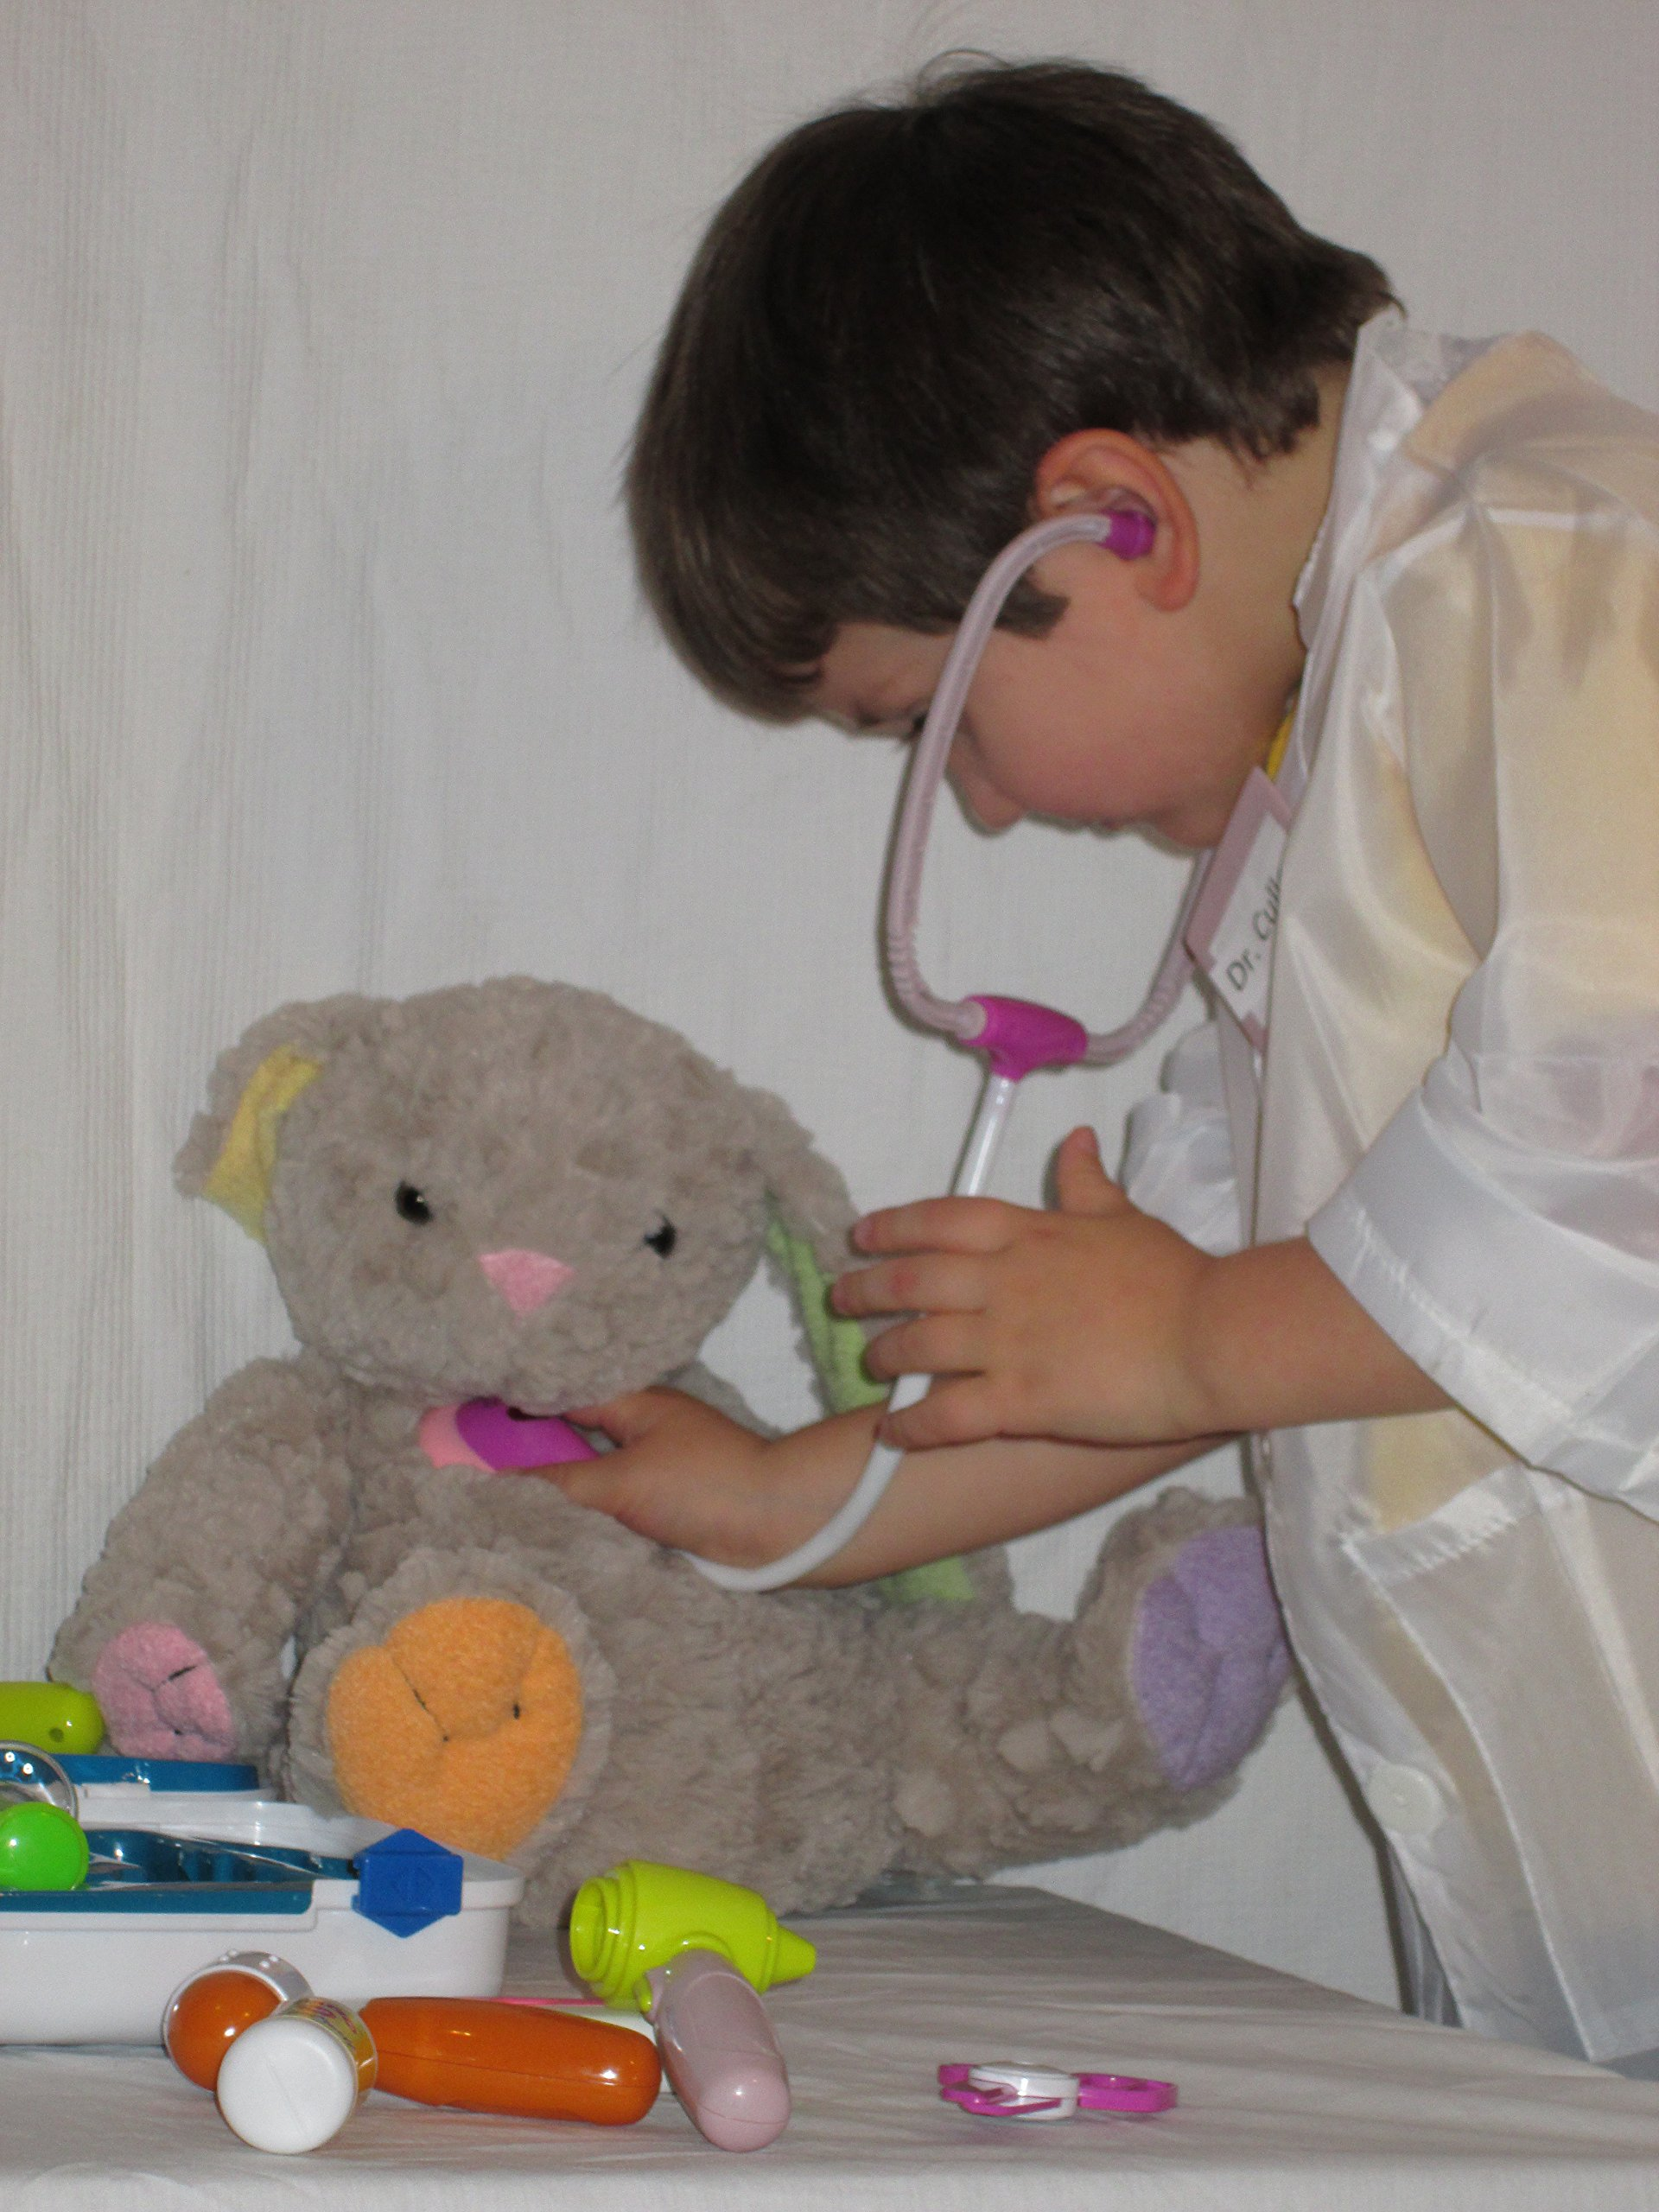 Toy Medical Doctor on Duty Set + Light and Sound -Doctor Coat ,Carry Case Included- Great Educational Role Play for Girls and Boys - Eliminate Check-up Anxiety- Provides Hours of Imigiative Interactive Fun - No Risk Guarantee